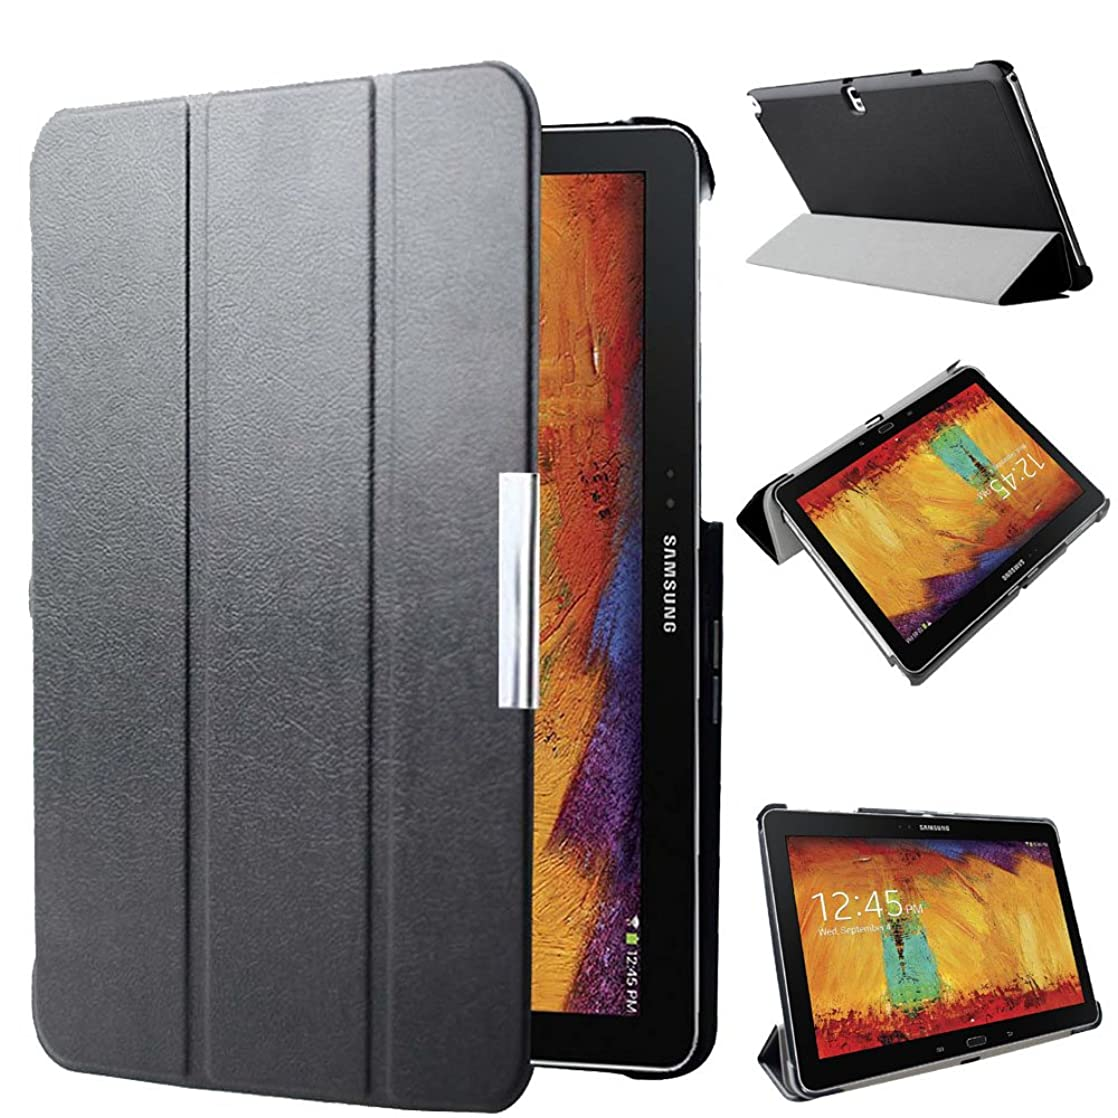 Kuesn SM-P600 P601 P605 Smart Stand Cover Case for Samsung Galaxy Note 10.1 (2014 Edition) Ultra Slim Flip Folio Pu Leather Case Pouch with Magnetic Auto Slepp&Awake up (Black) gwmqqlet71195